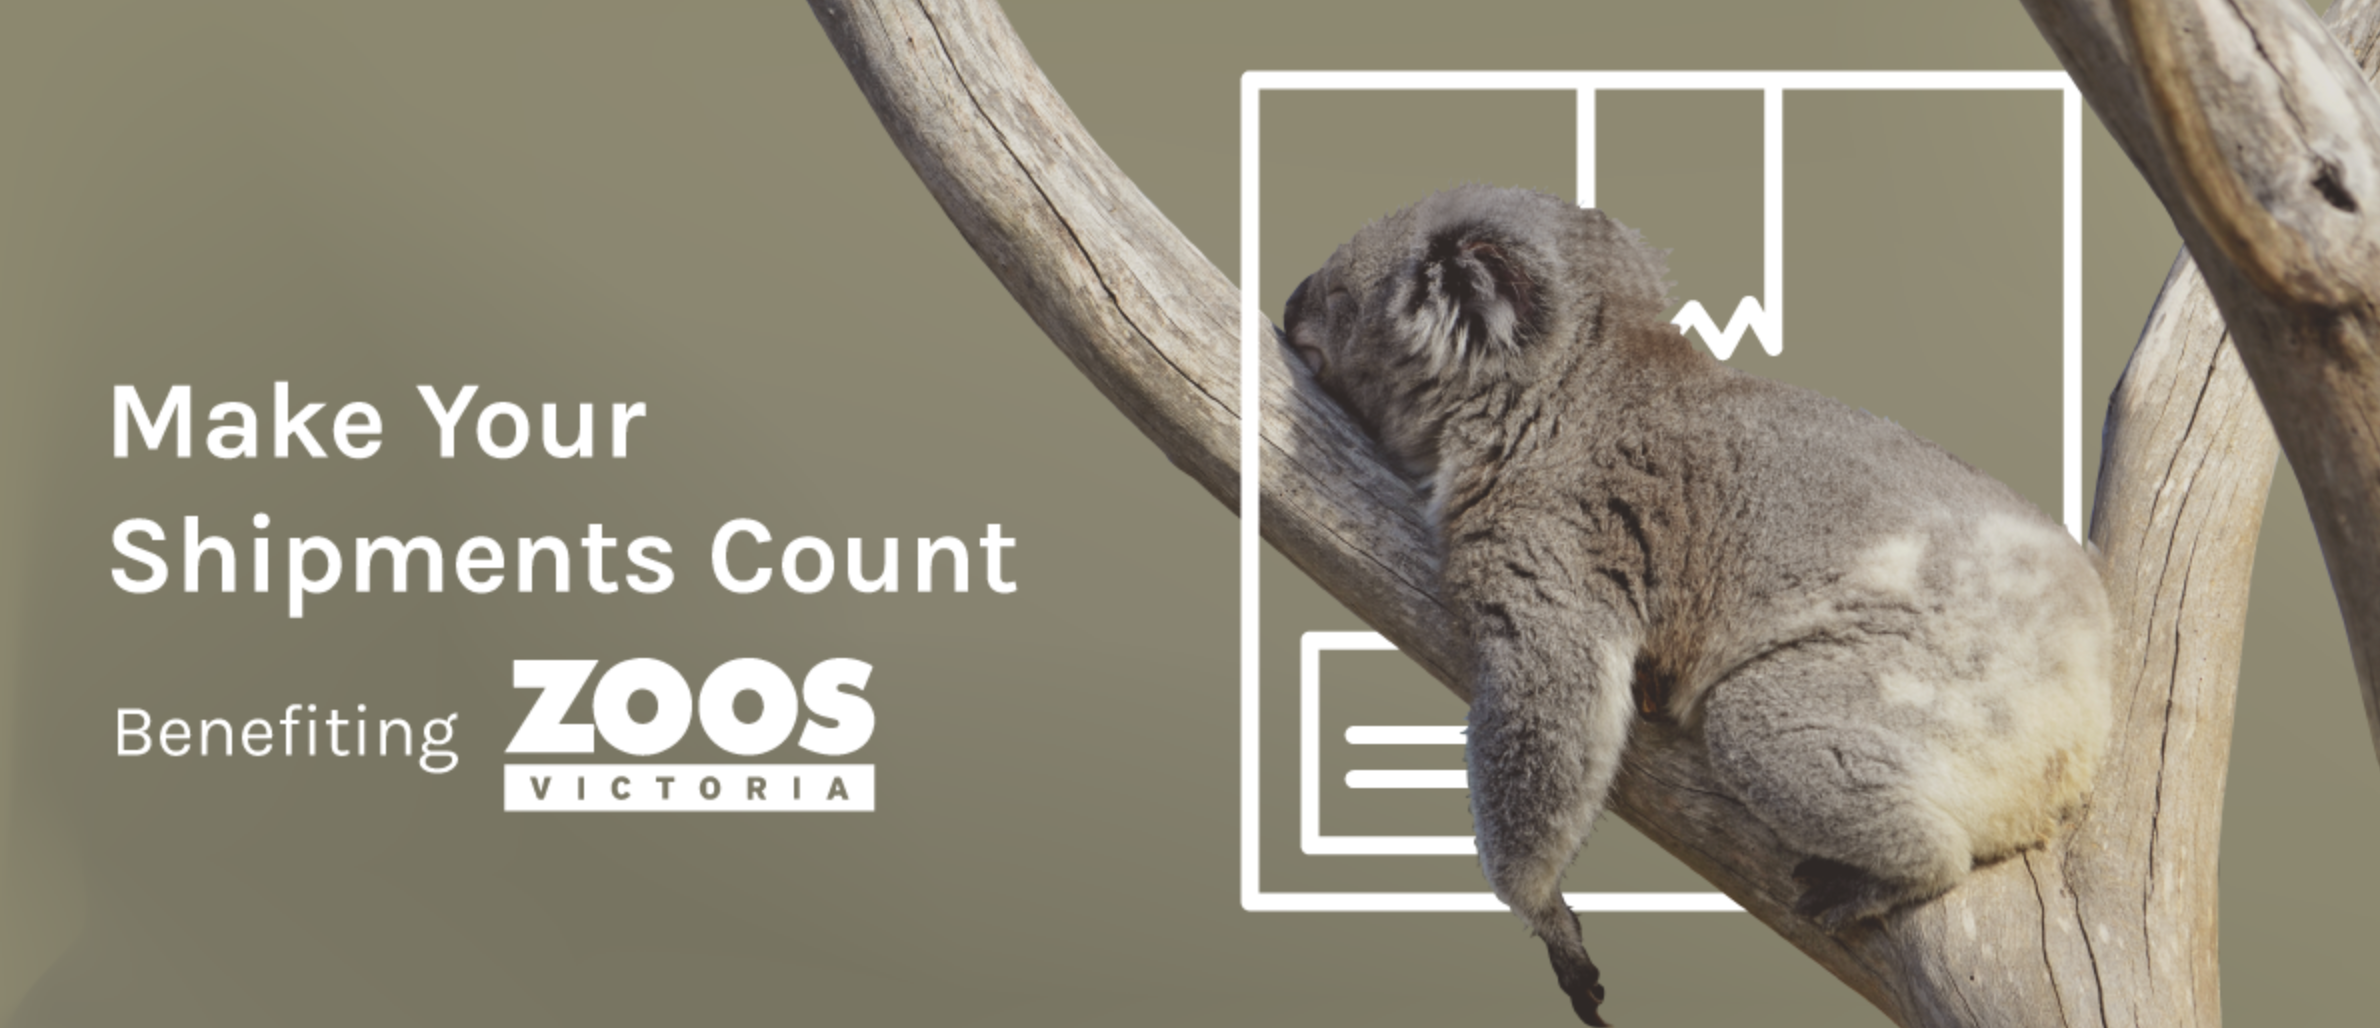 Easyship donates to Zoos Victoria on behalf of Small Businesses